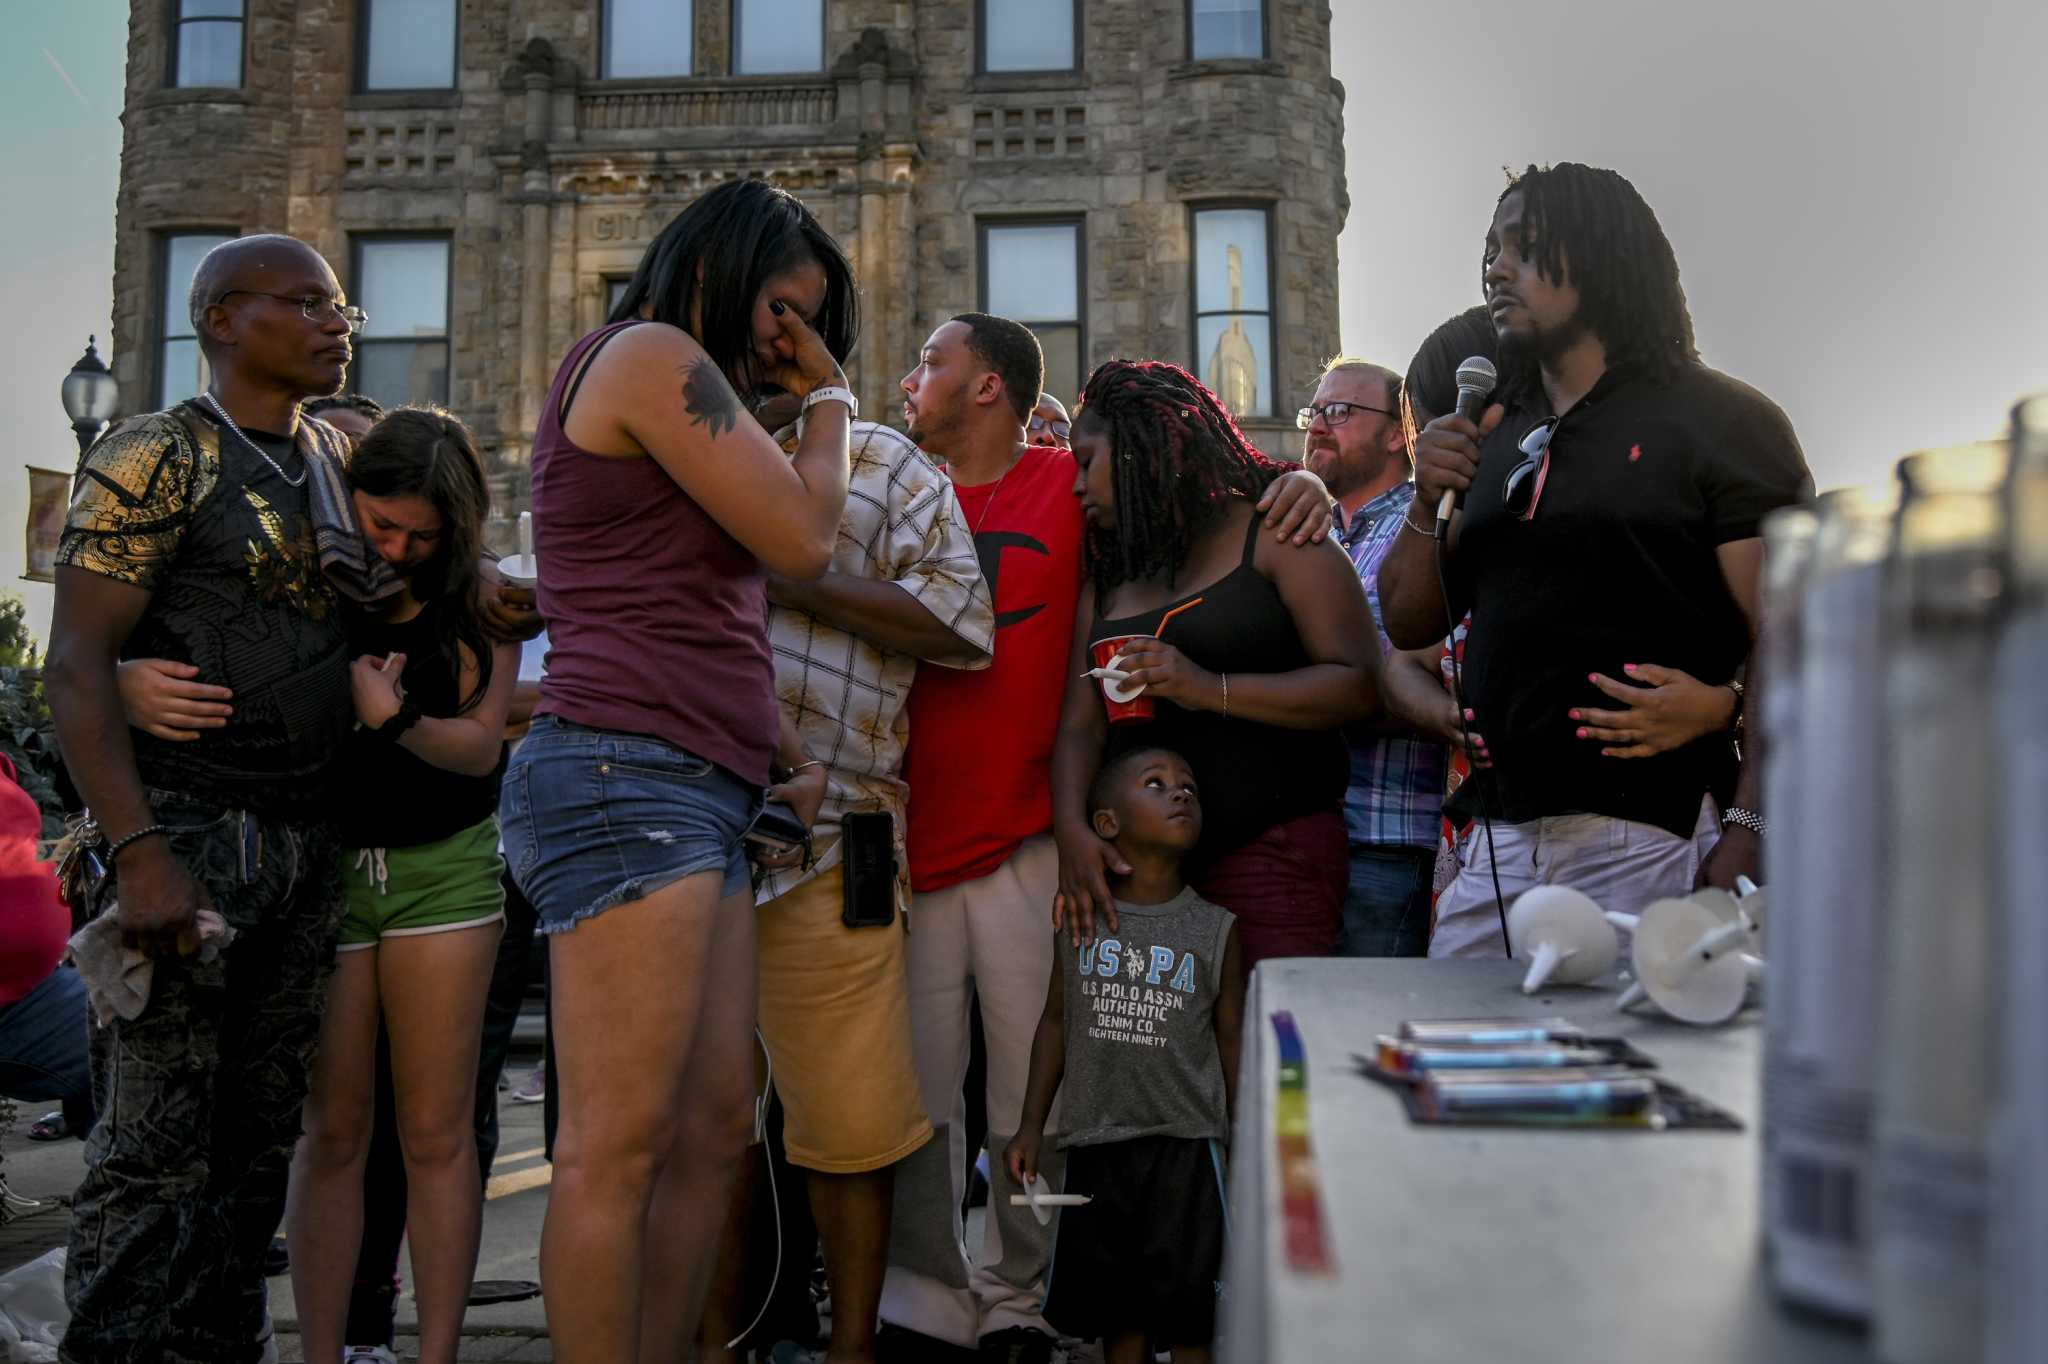 One devastating event after another, Dayton continues to seek recovery